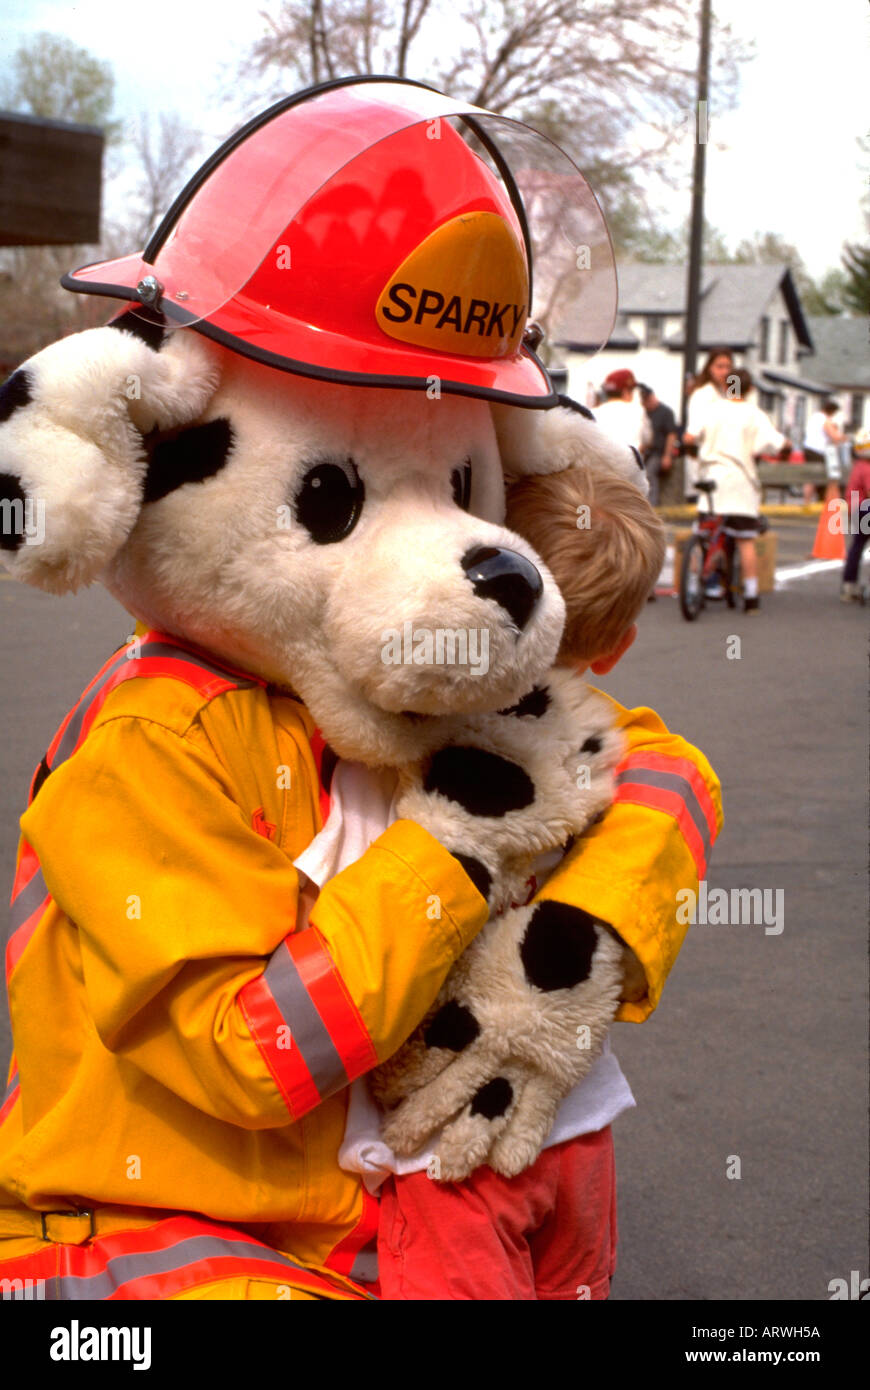 Sparky The Fire Department Mascot Hugging Boy Age 35 And 5 St Paul Minnesota USA